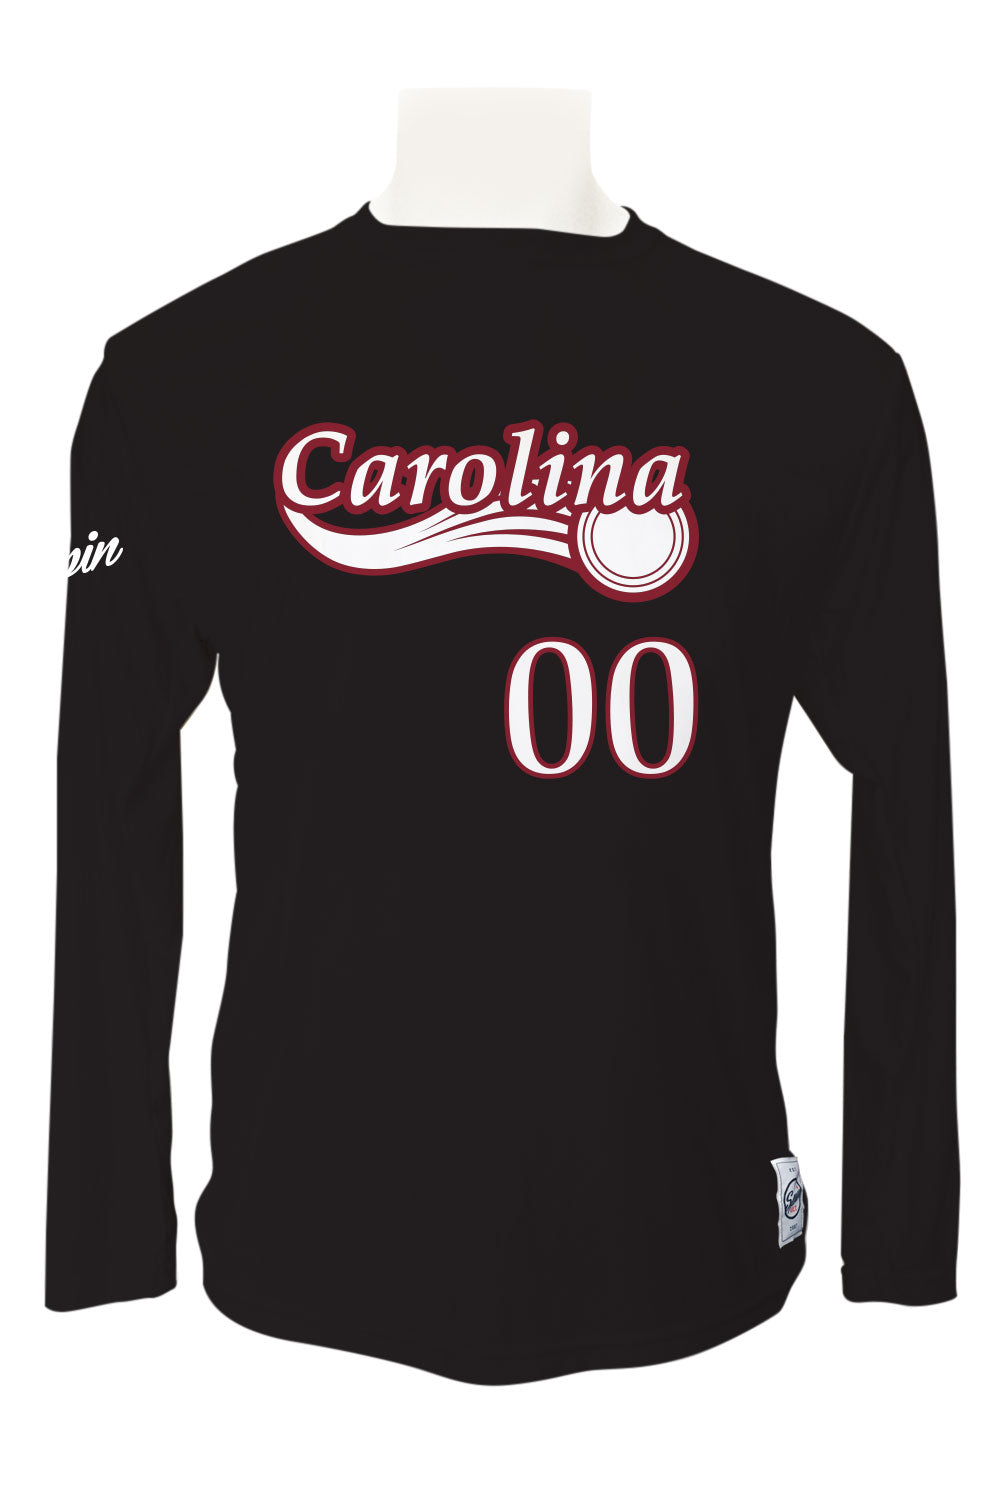 South Carolina Full Sub Long Sleeve Jersey